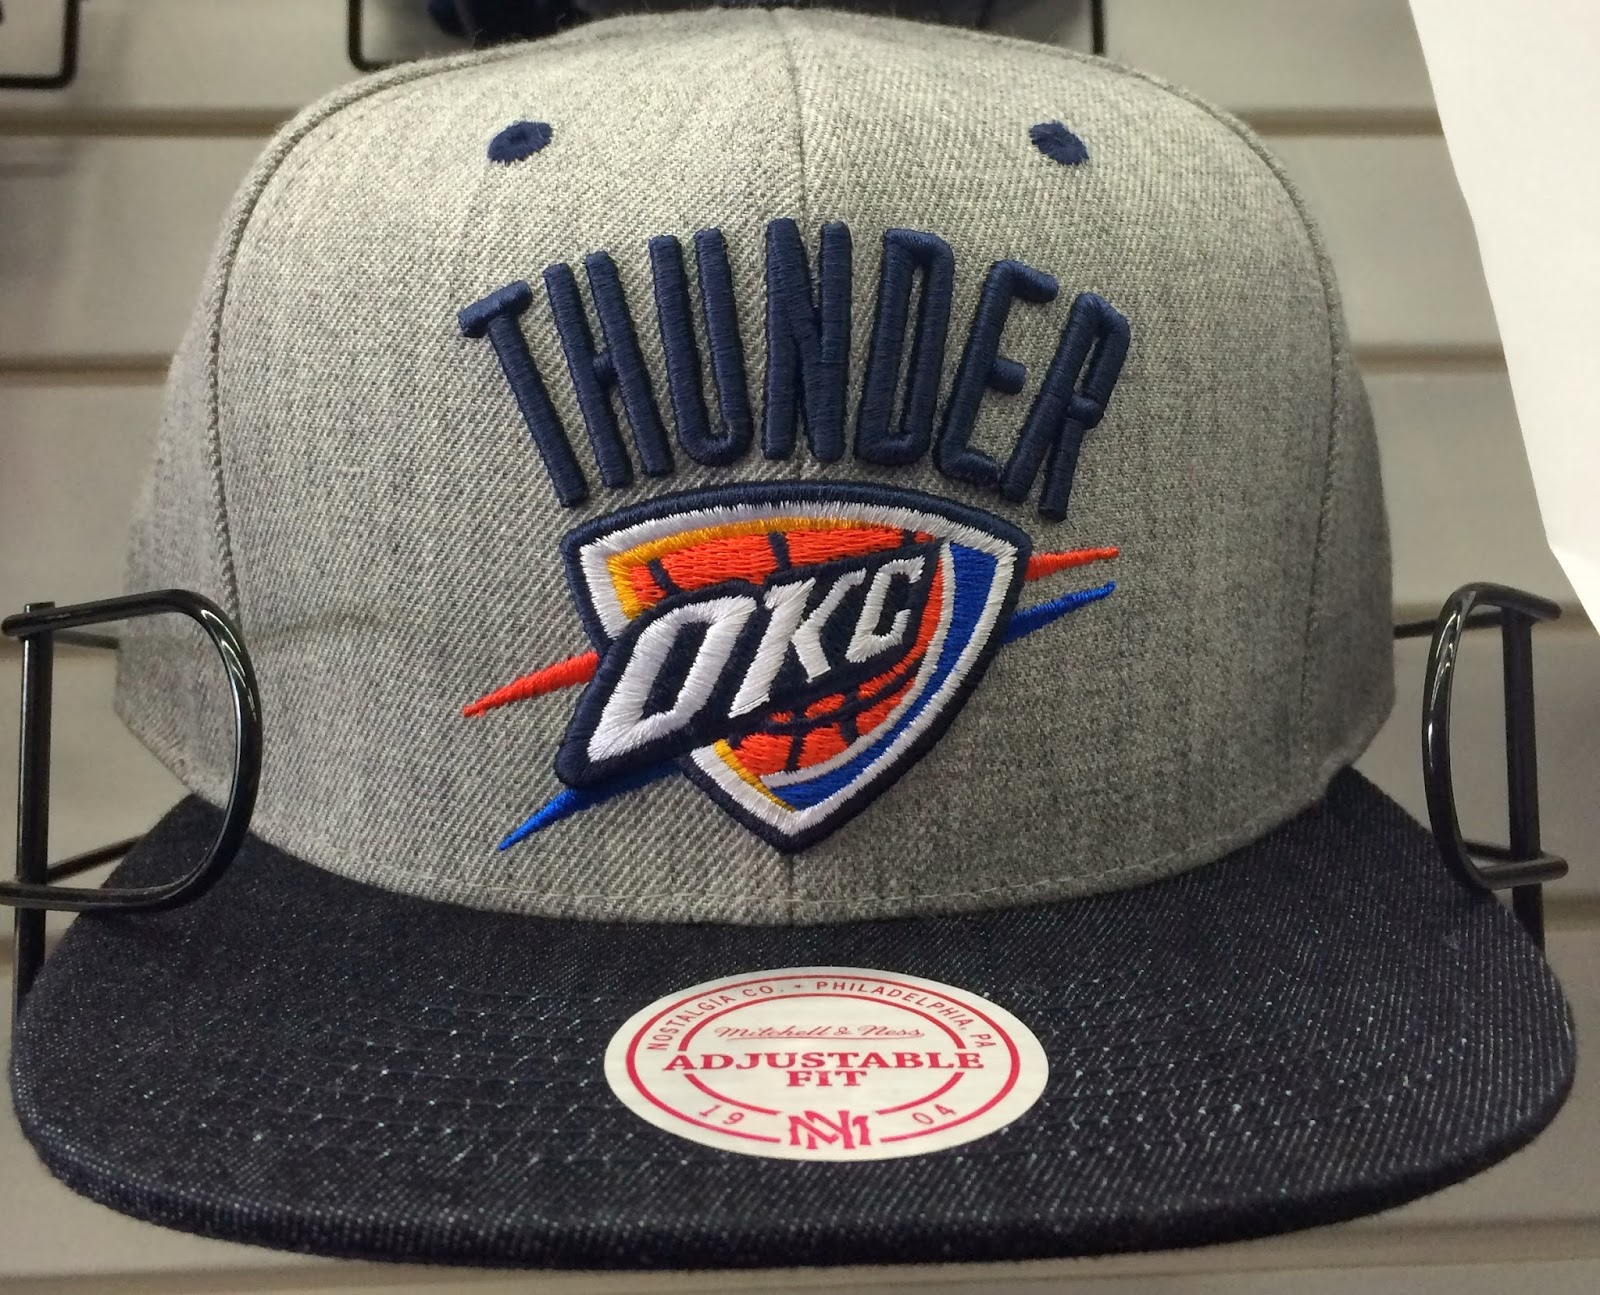 mitchell and ness snapback hats okc snapback hats. Black Bedroom Furniture Sets. Home Design Ideas